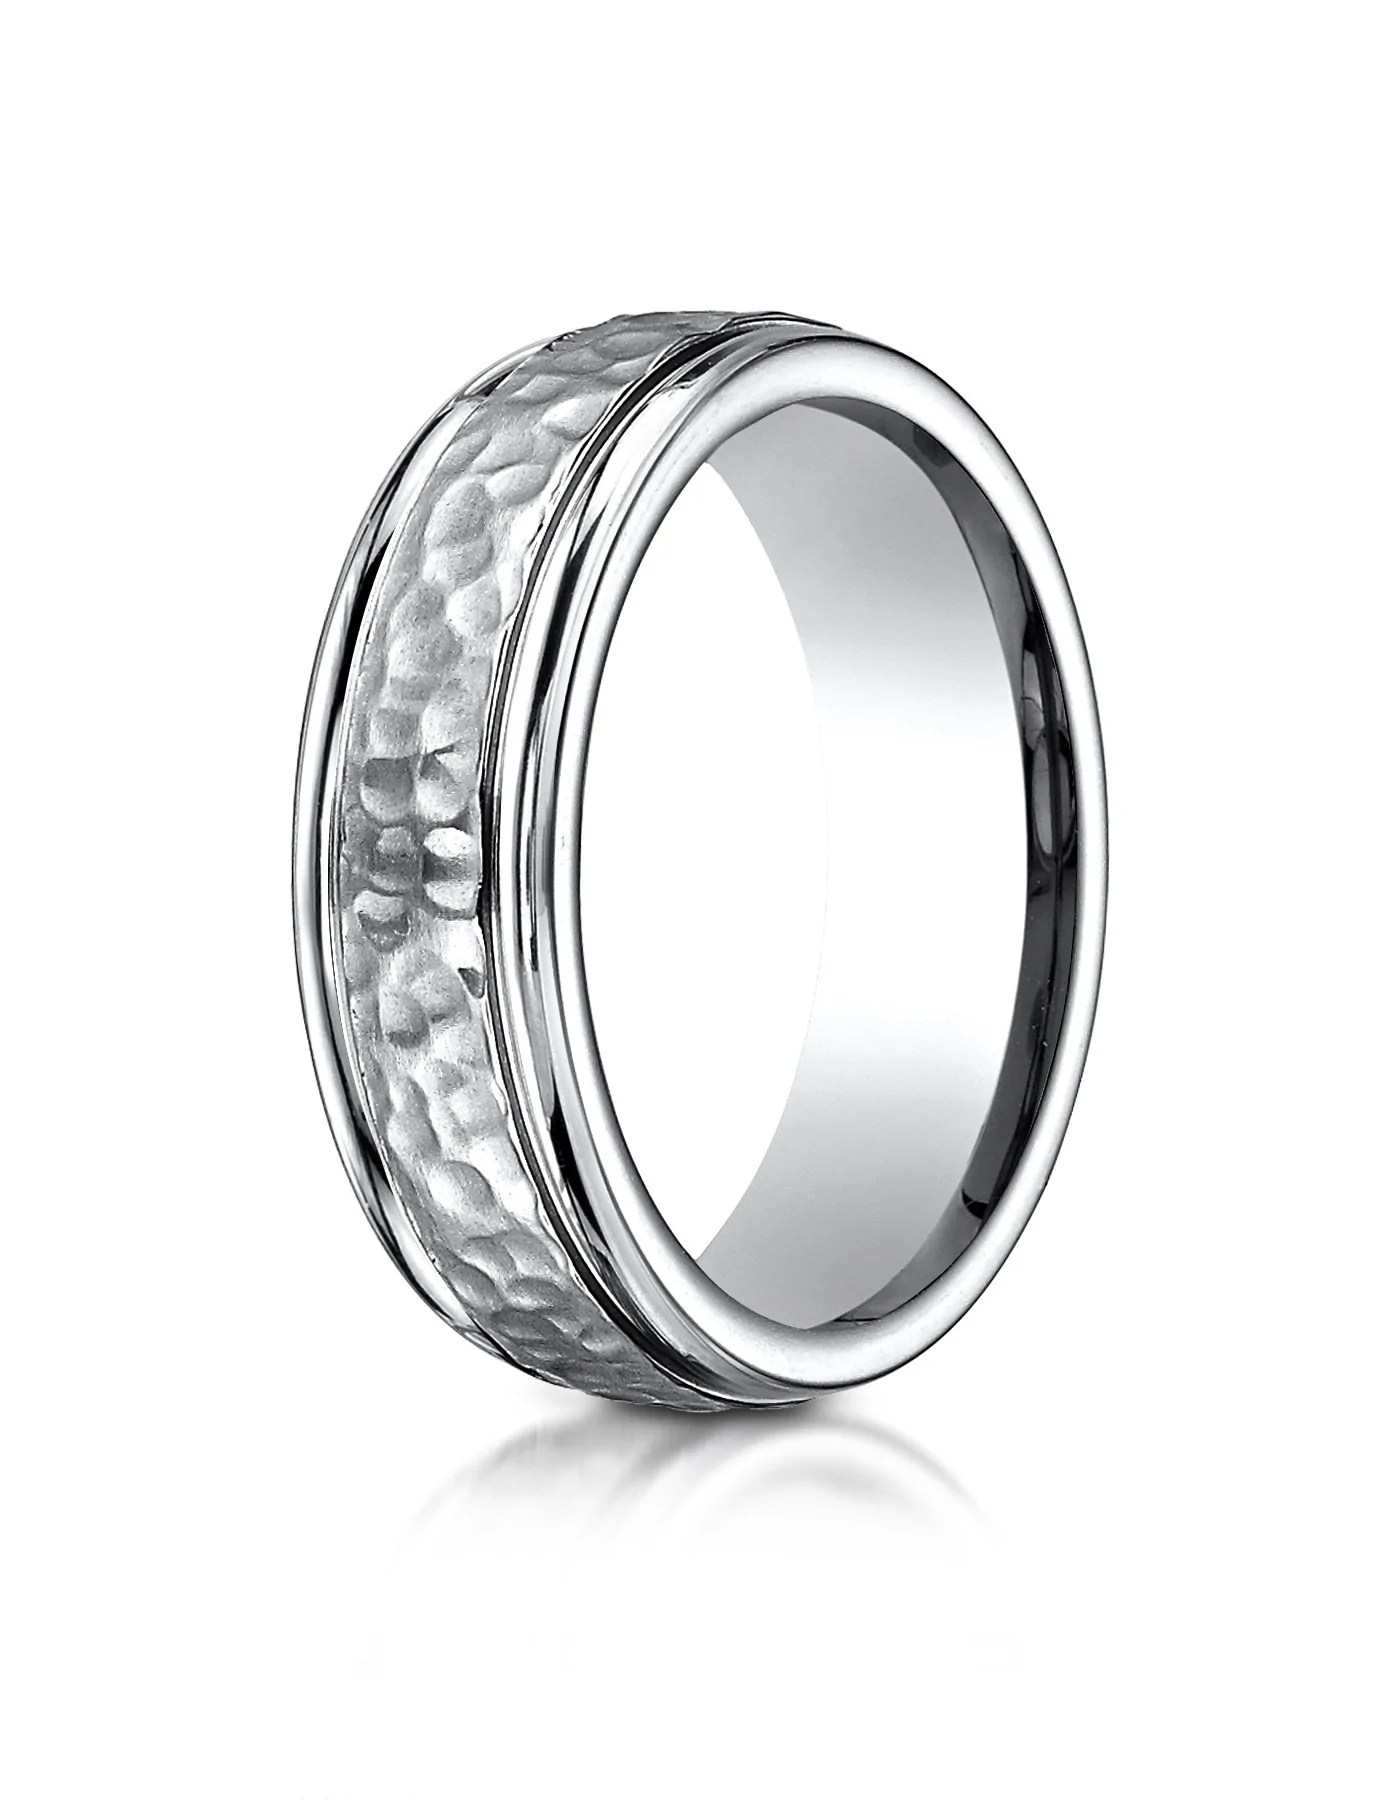 caracas hammered finished titanium wedding band for men by benchmark tungsten hammered wedding band CARACAS Hammered Finished Titanium Wedding Band for Men